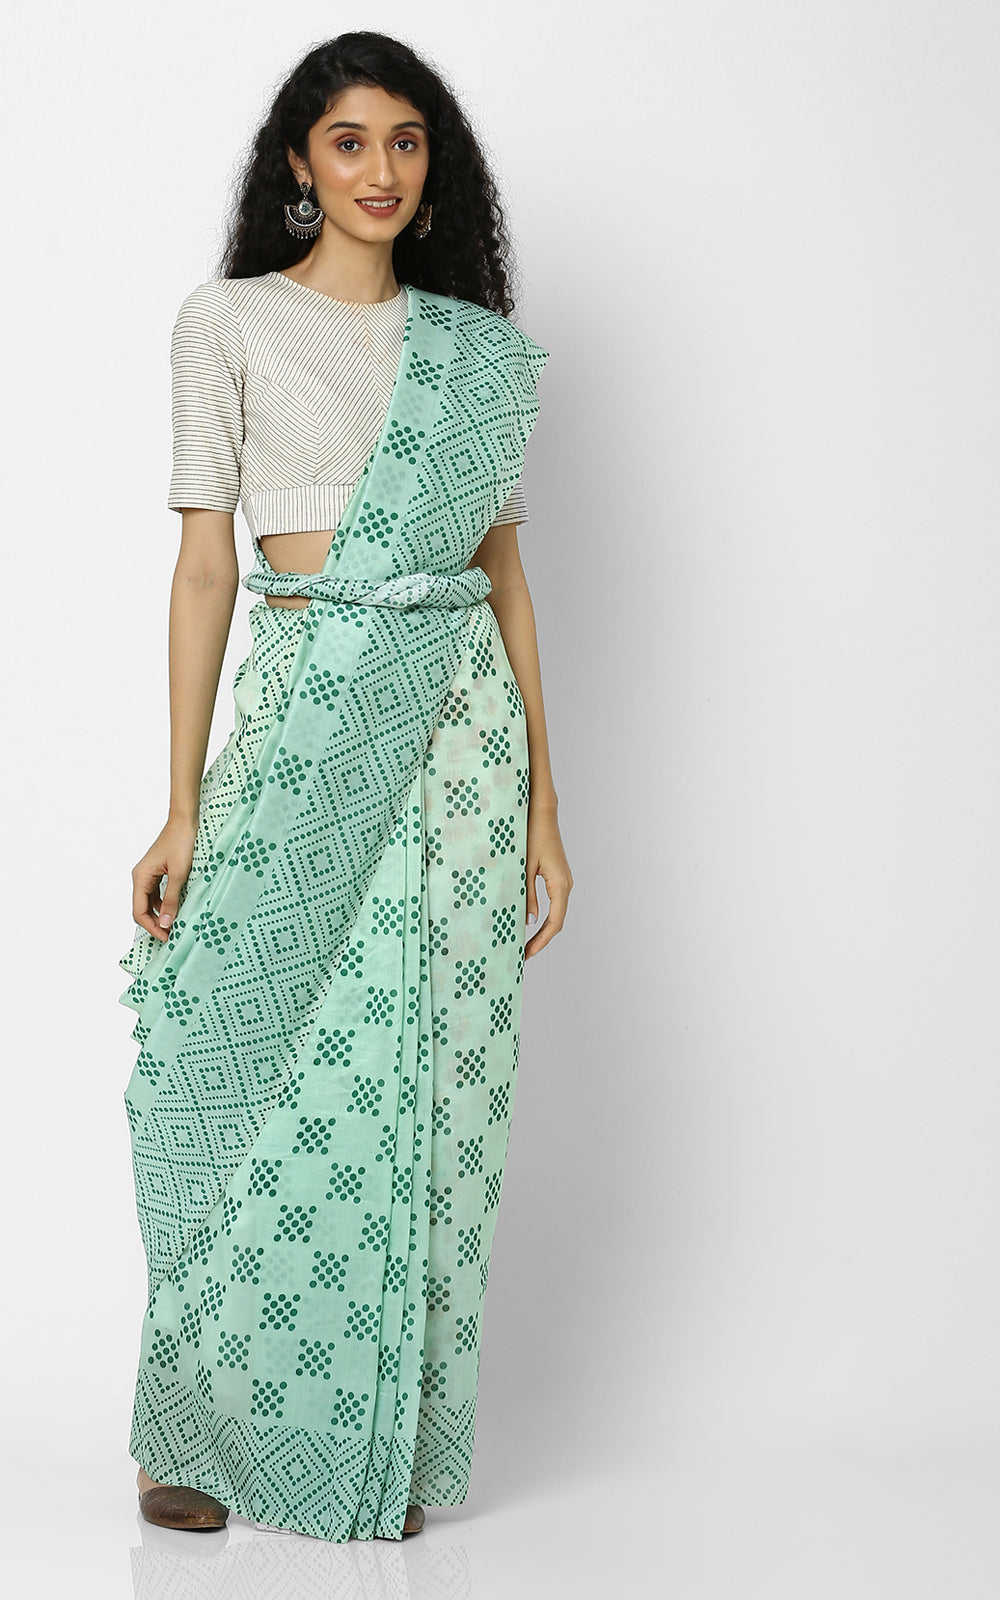 GREEN CHANDERI SILK SAREE WITH GEOMETRIC PRINTS